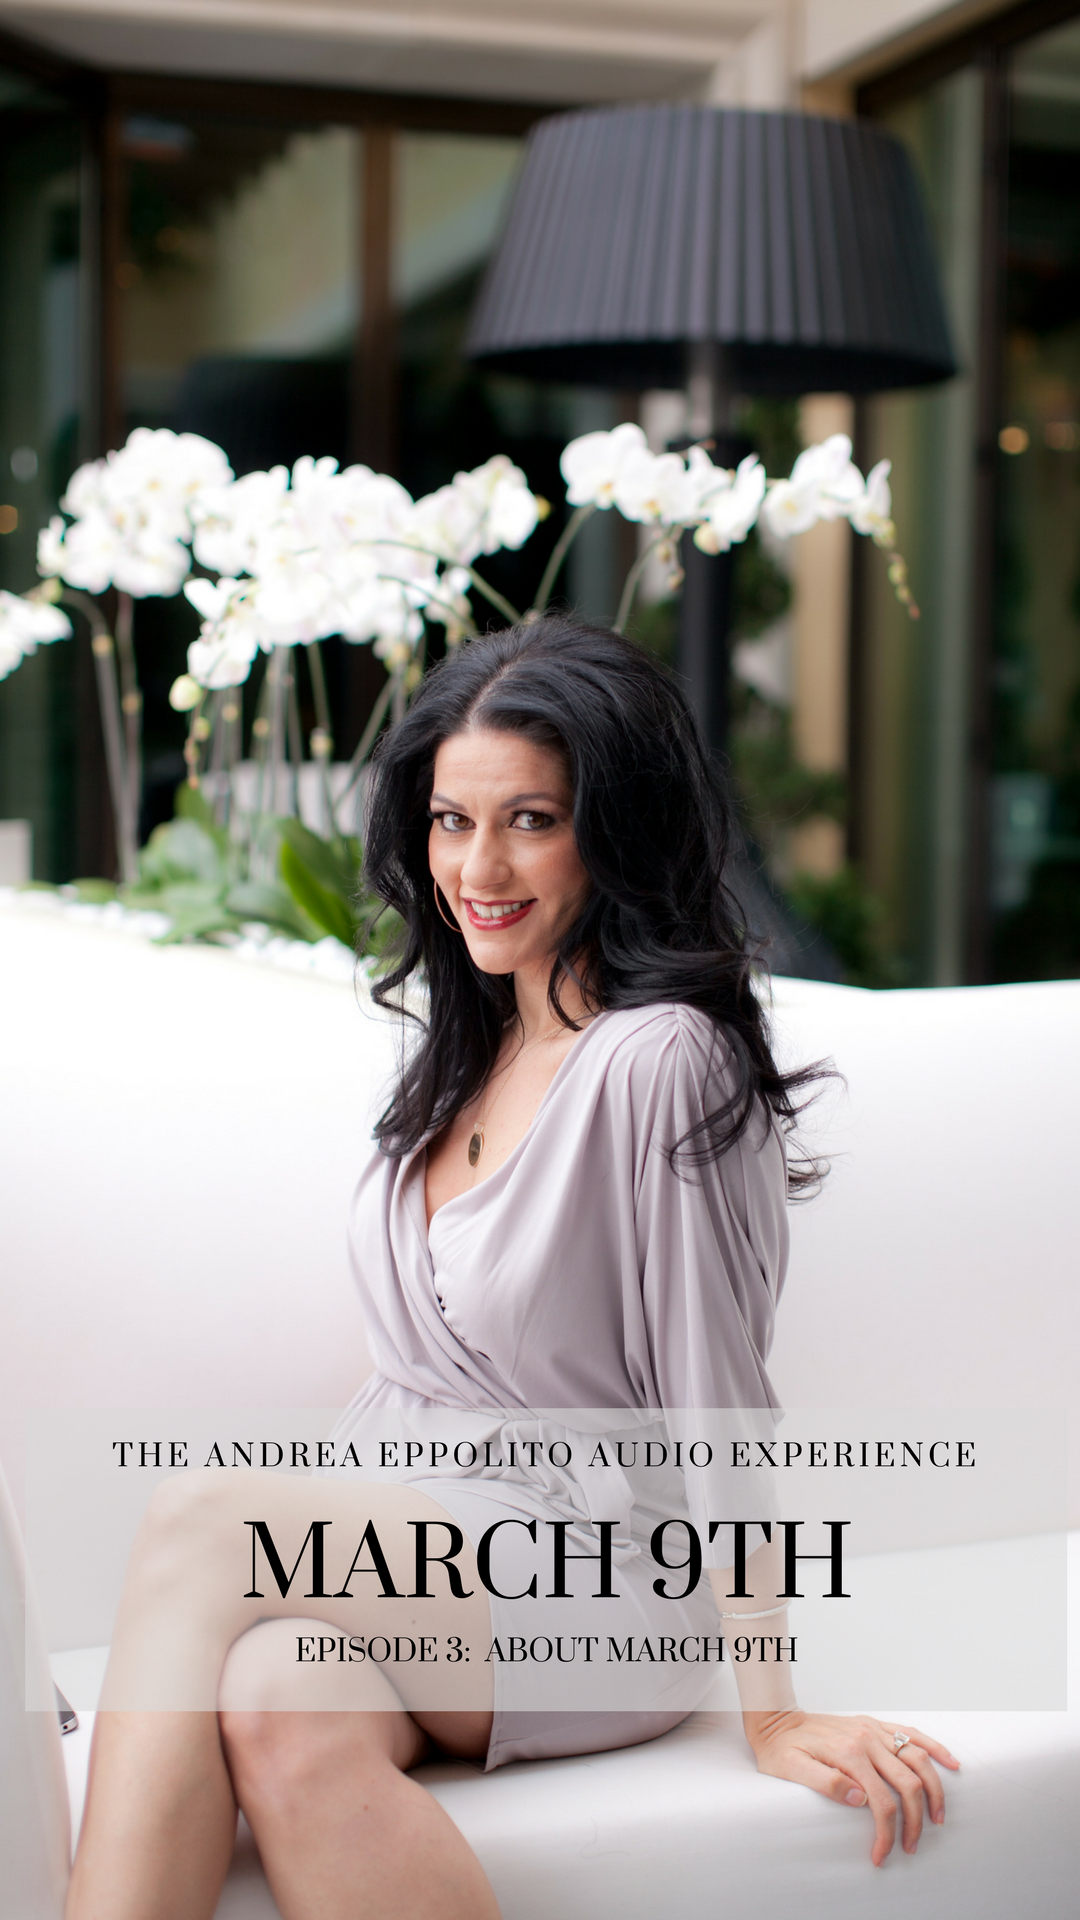 Las Vegas Wedding Planning Podcast.  Andrea Eppolito hosts a podcast discussing life, luxury, and above all else...love.